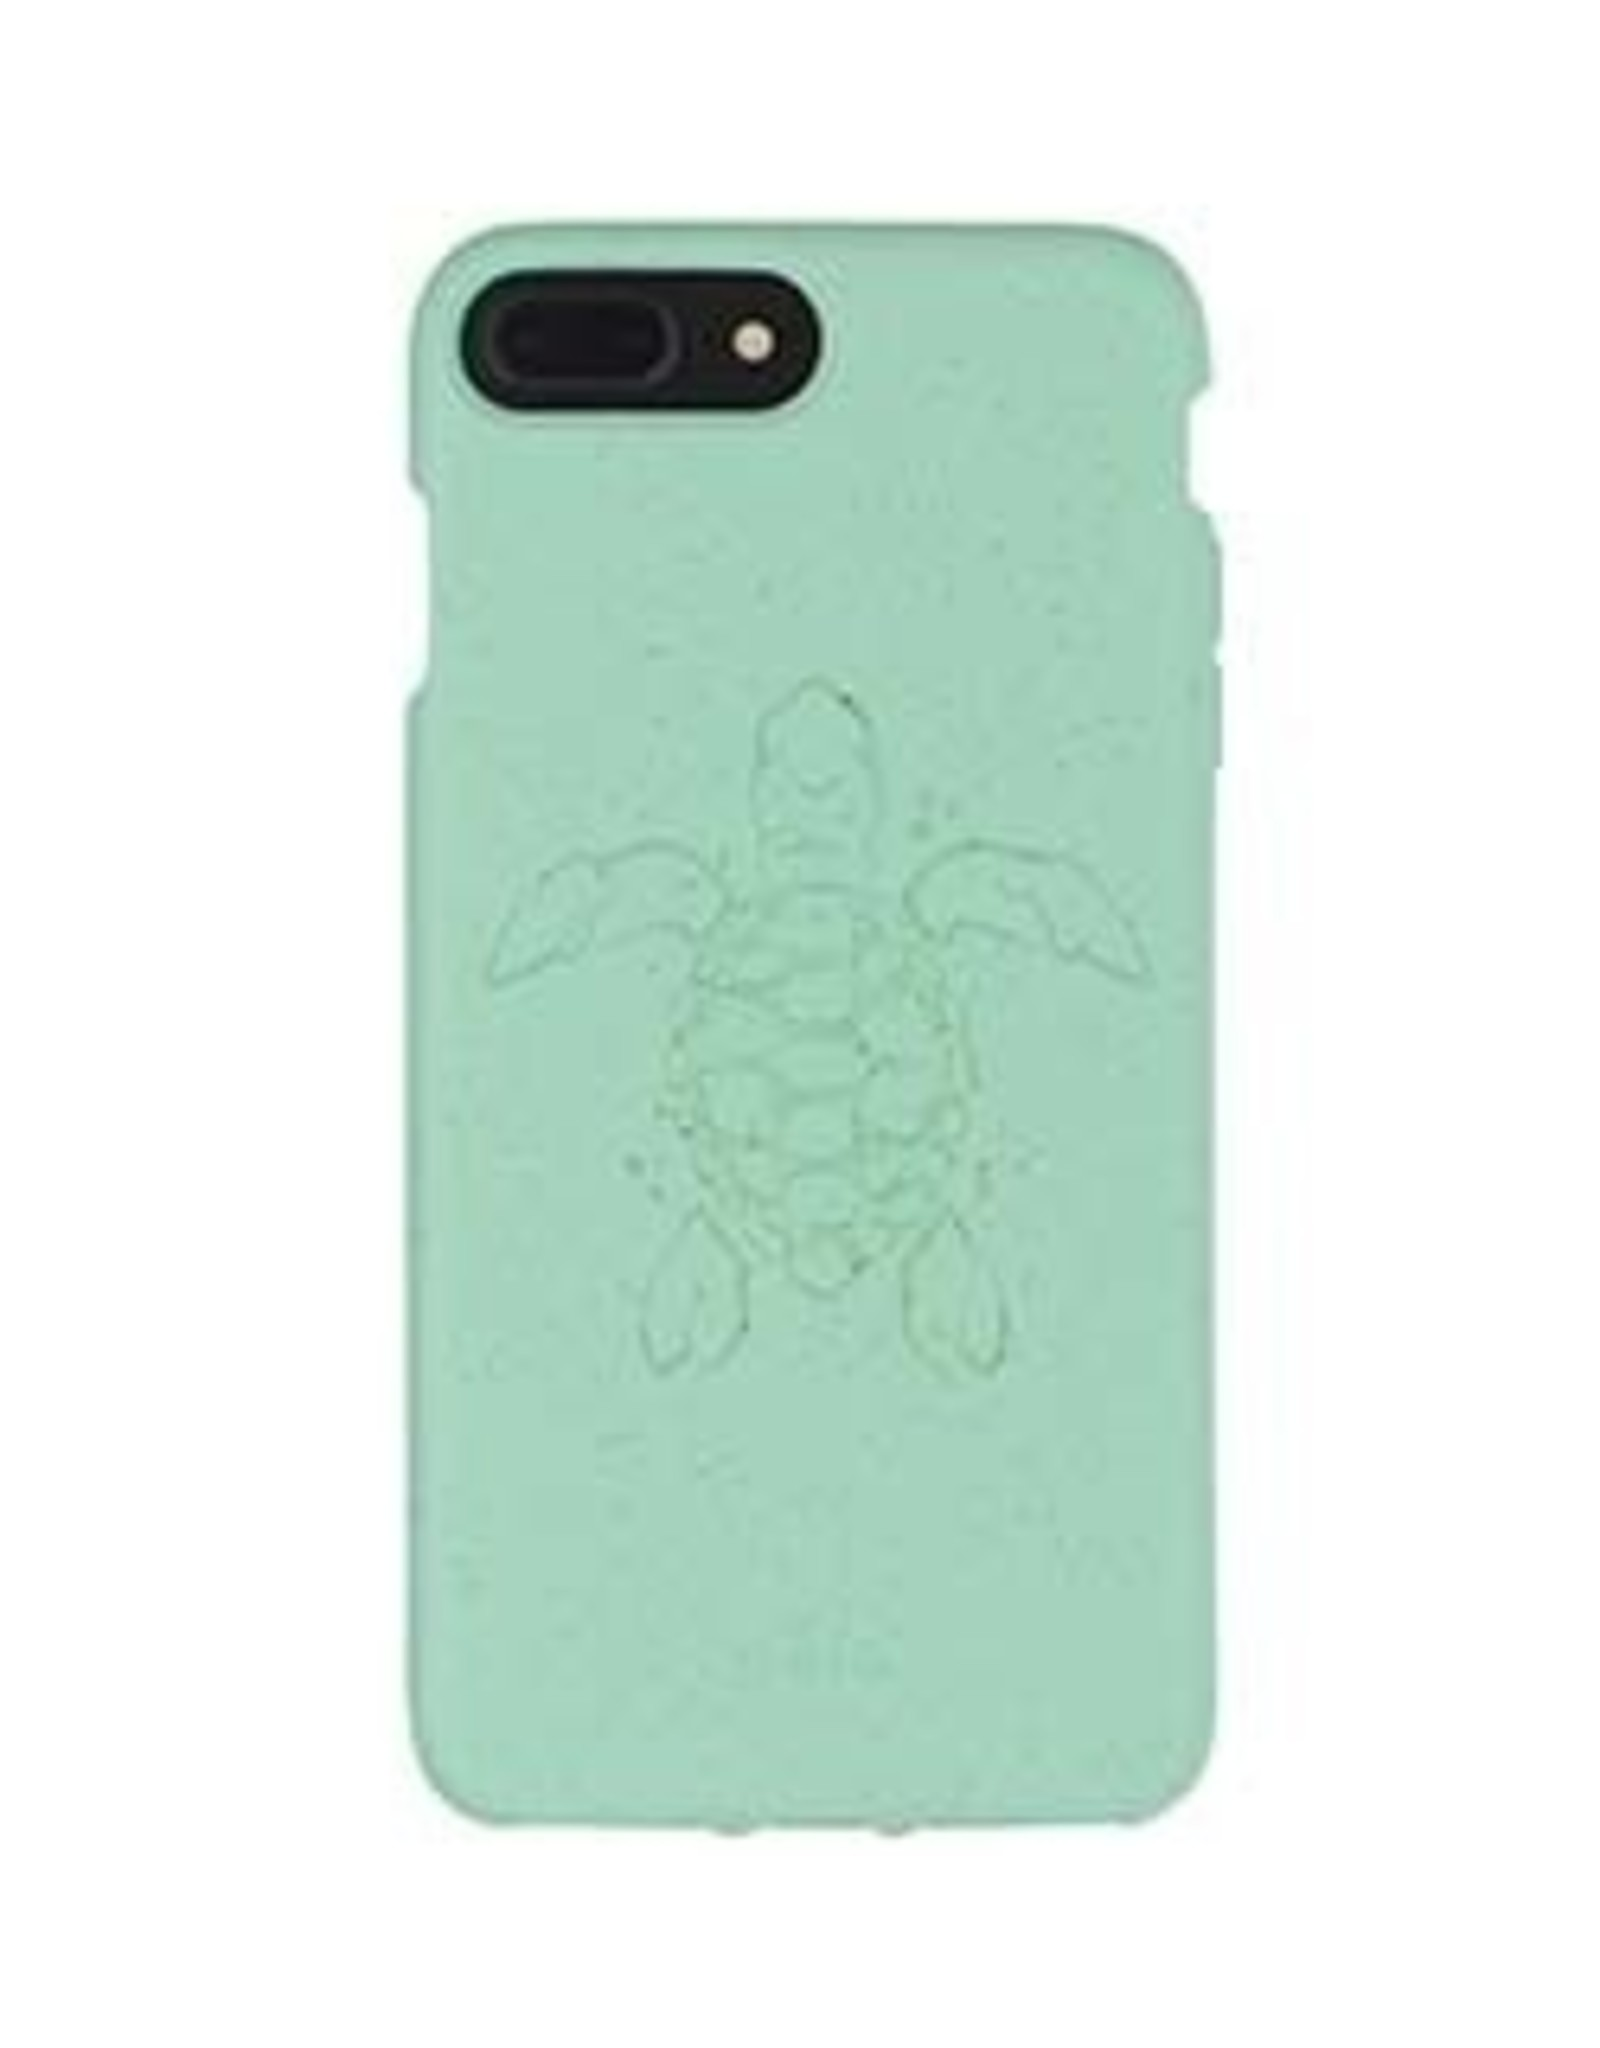 Pela Pela | iPhone 8 Plus/7 Plus/6 Plus/6S Plus Turtle Edition Compostable Eco-Friendly Protective Case | 15-04738